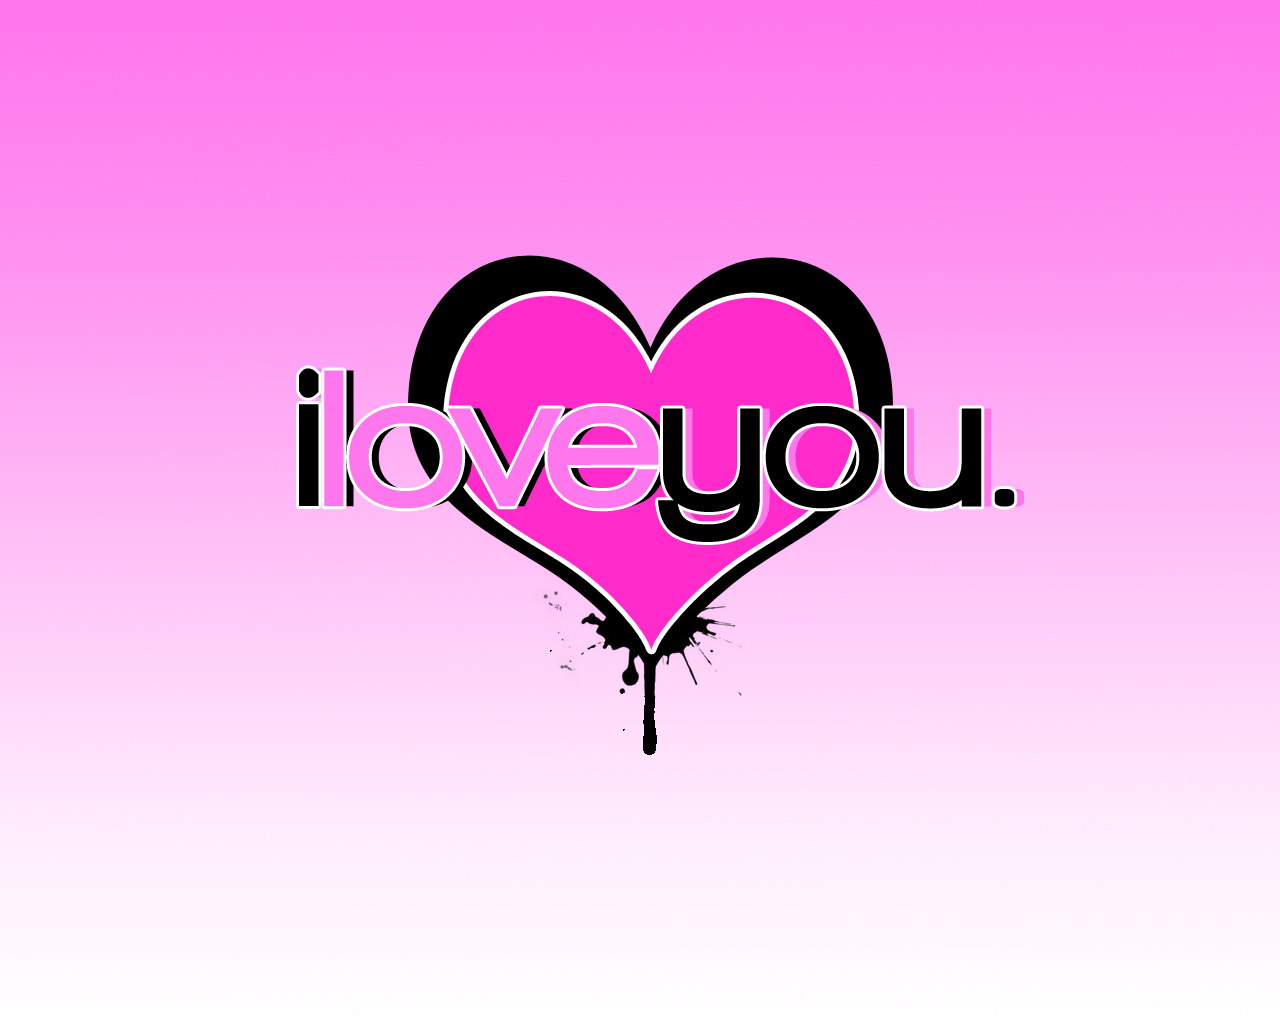 Wallpaper I Love You Photo : I Love You (ILU) Pictures, Photos and HD wallpapers 2016